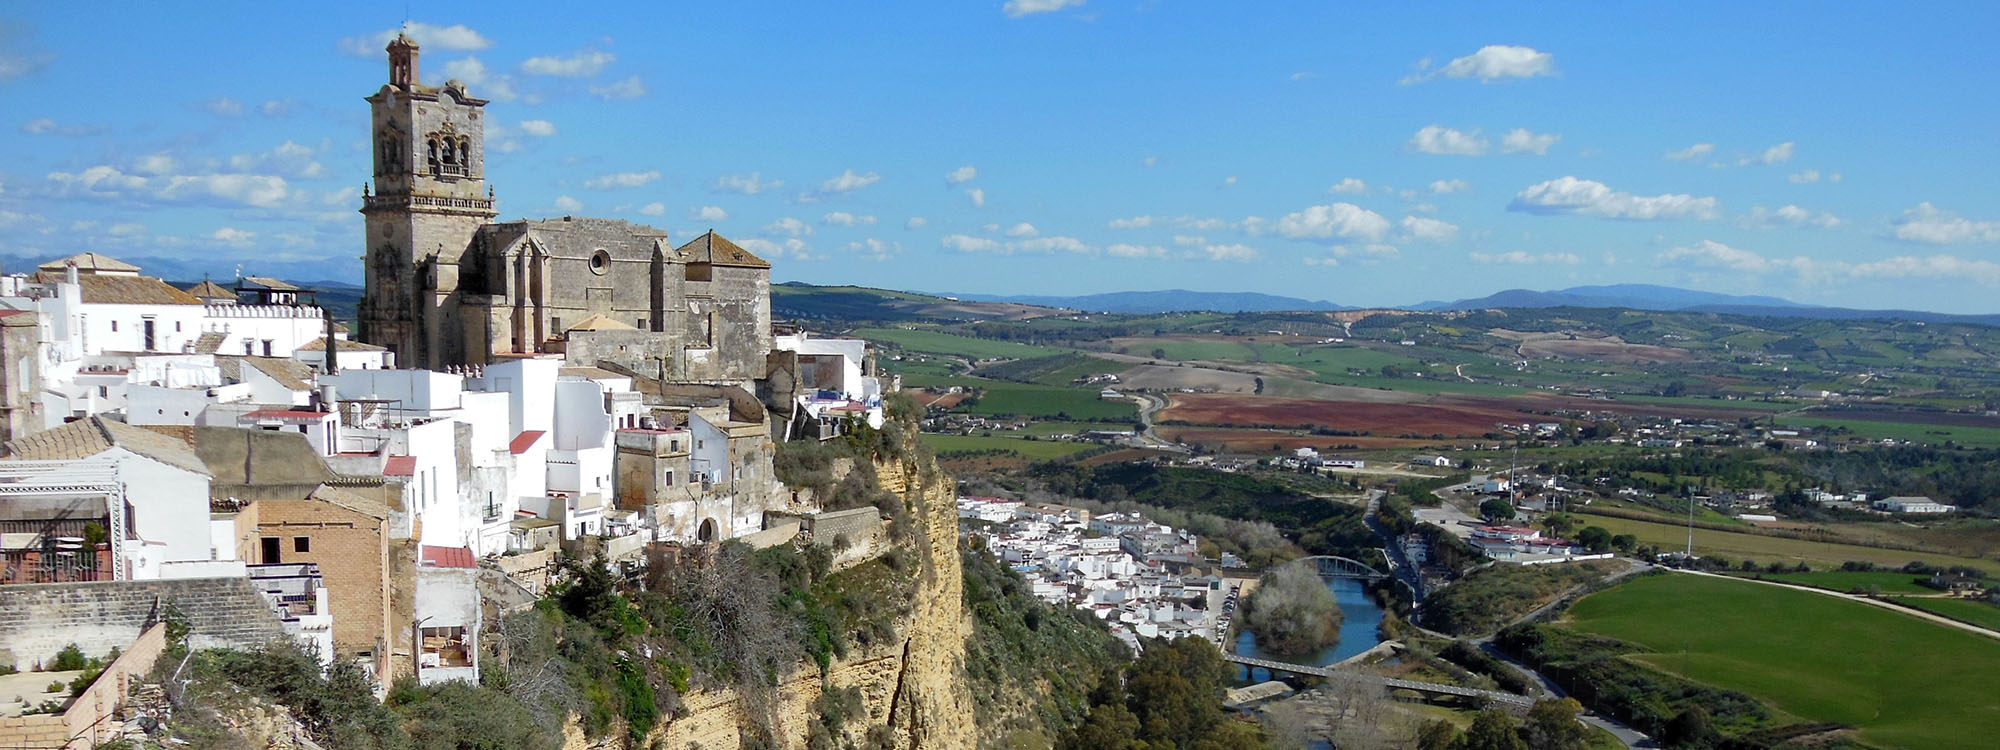 DAY 9: ENCHANTING WHITE VILLAGES FROM ARCOS TO RONDA